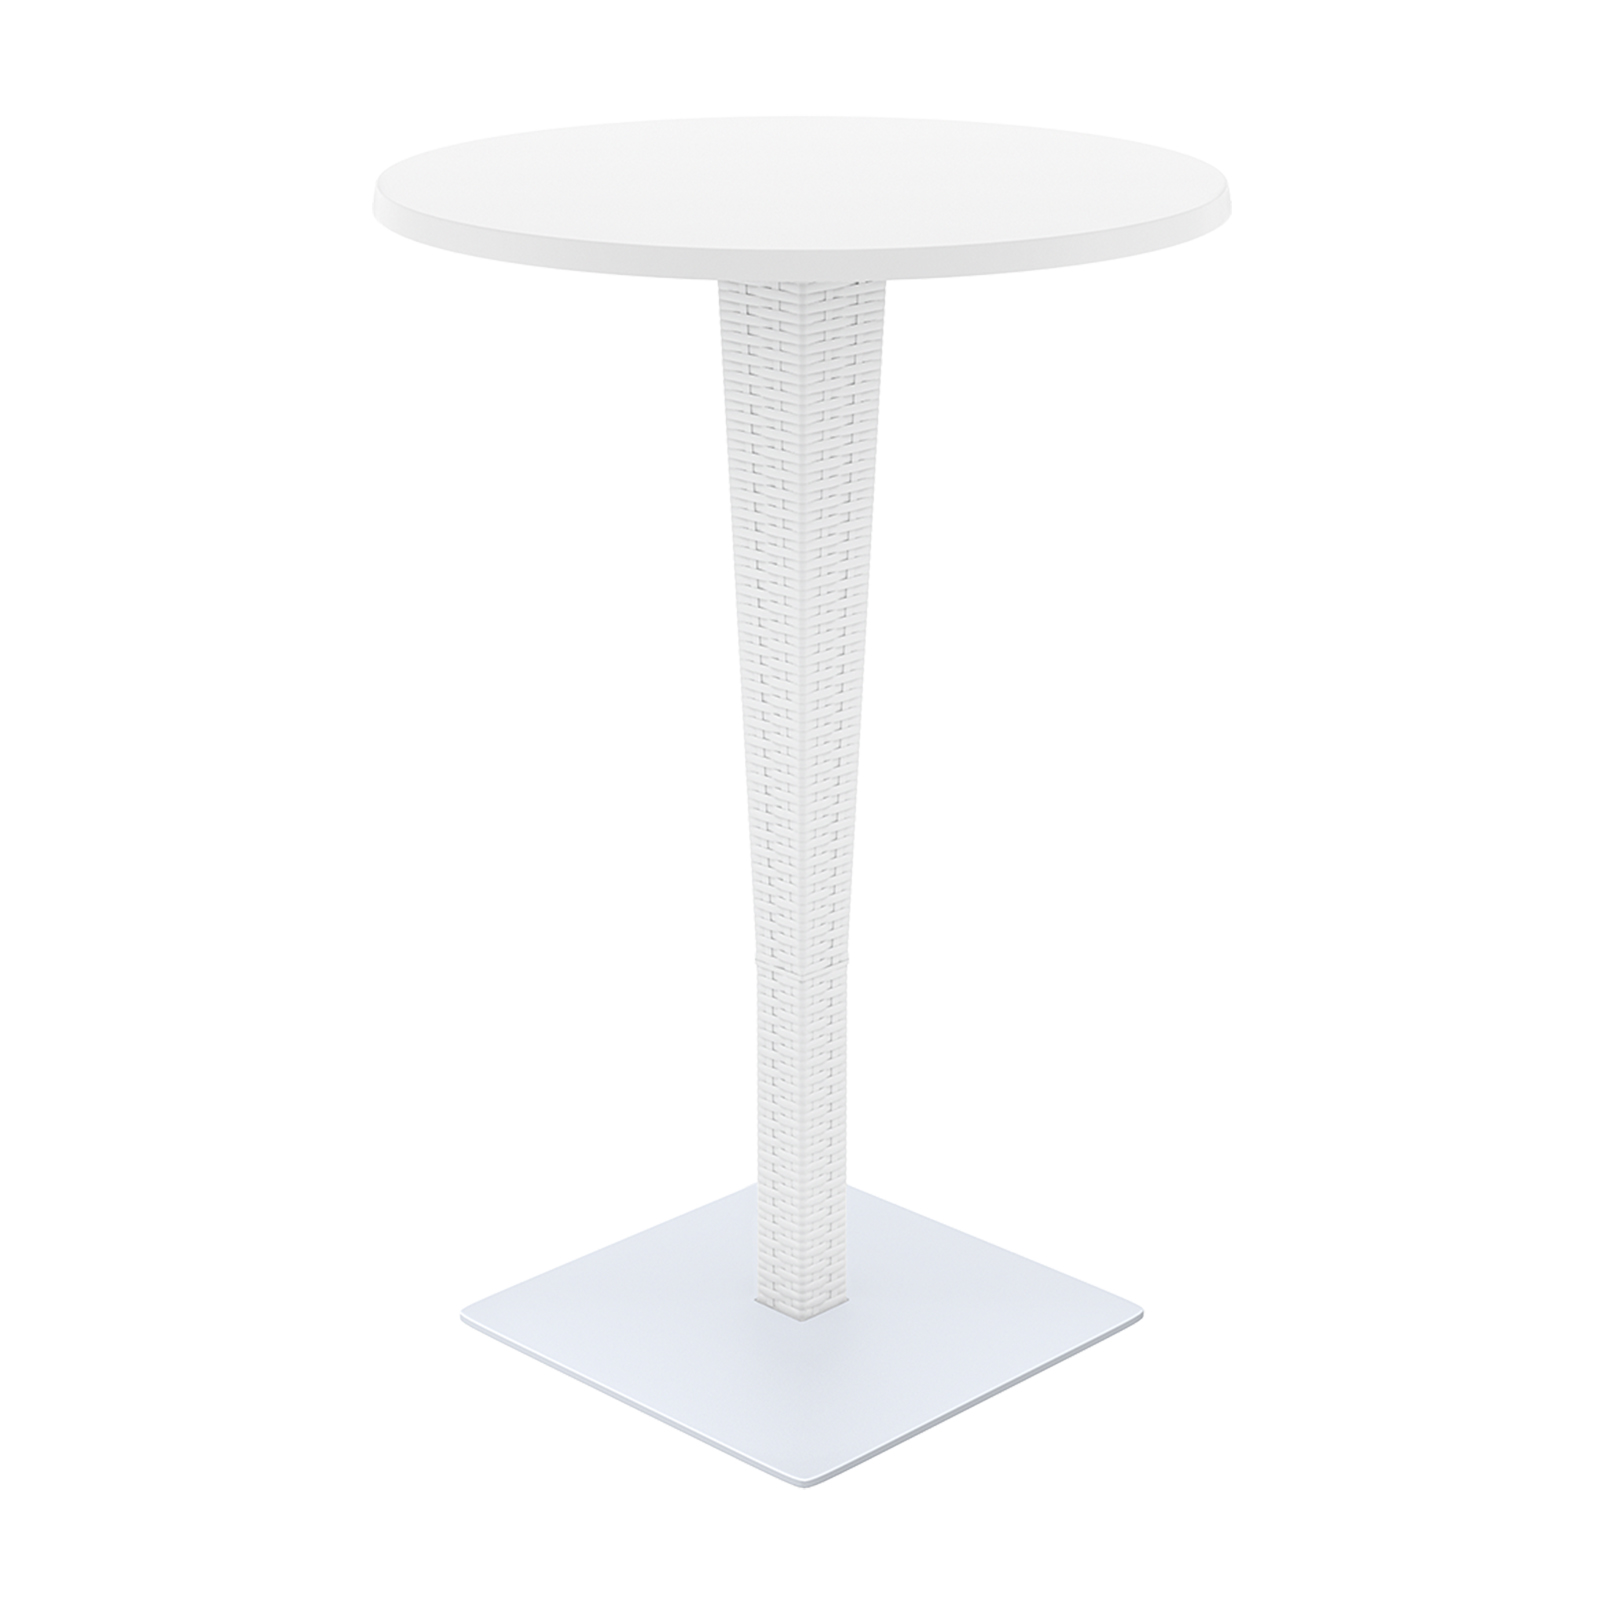 riva bar round table werzalit top hannah concept rattan patio and garden white end painted black beautiful coffee tables distressed wood nesting rustic wolf kitchen appliances